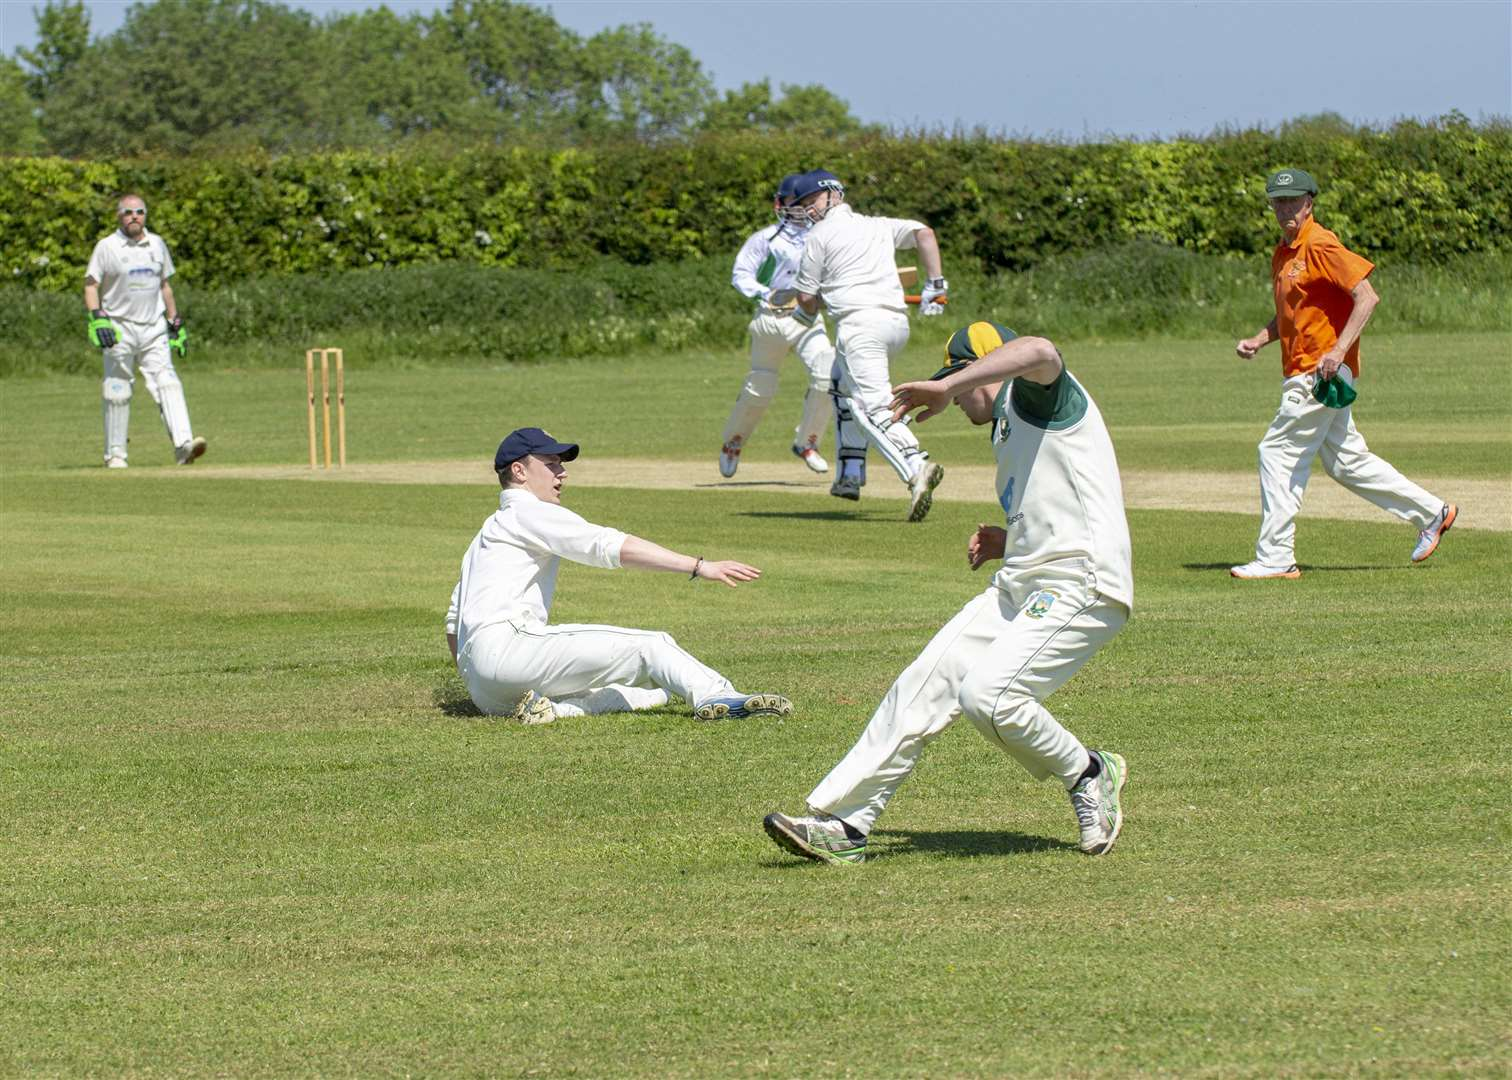 Easton-on-the-Hill v Castor 2nds. Photos: Lee Hellwing (2100098)